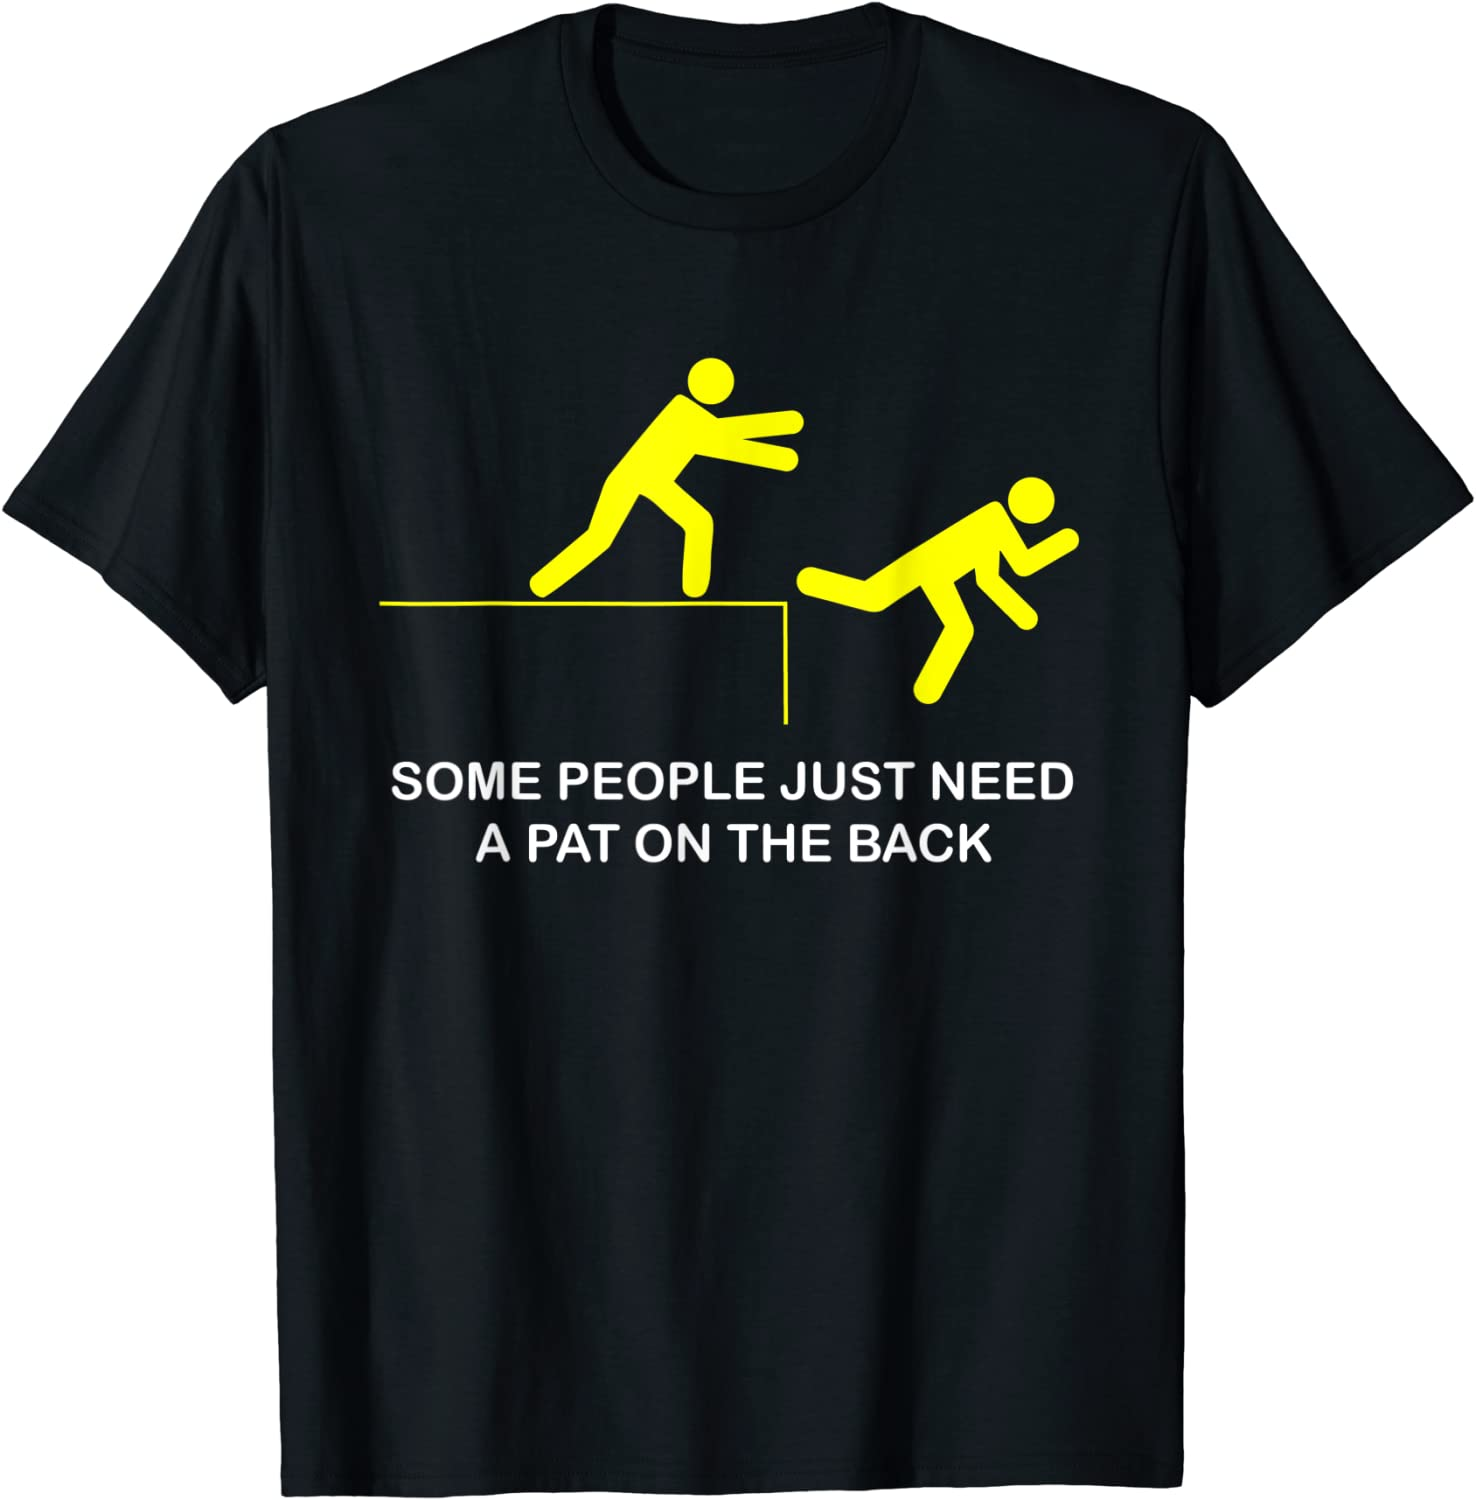 Some People Need A Pat On The Back Men/'s T-Shirt Novelty Sarcastic Funny Tee New